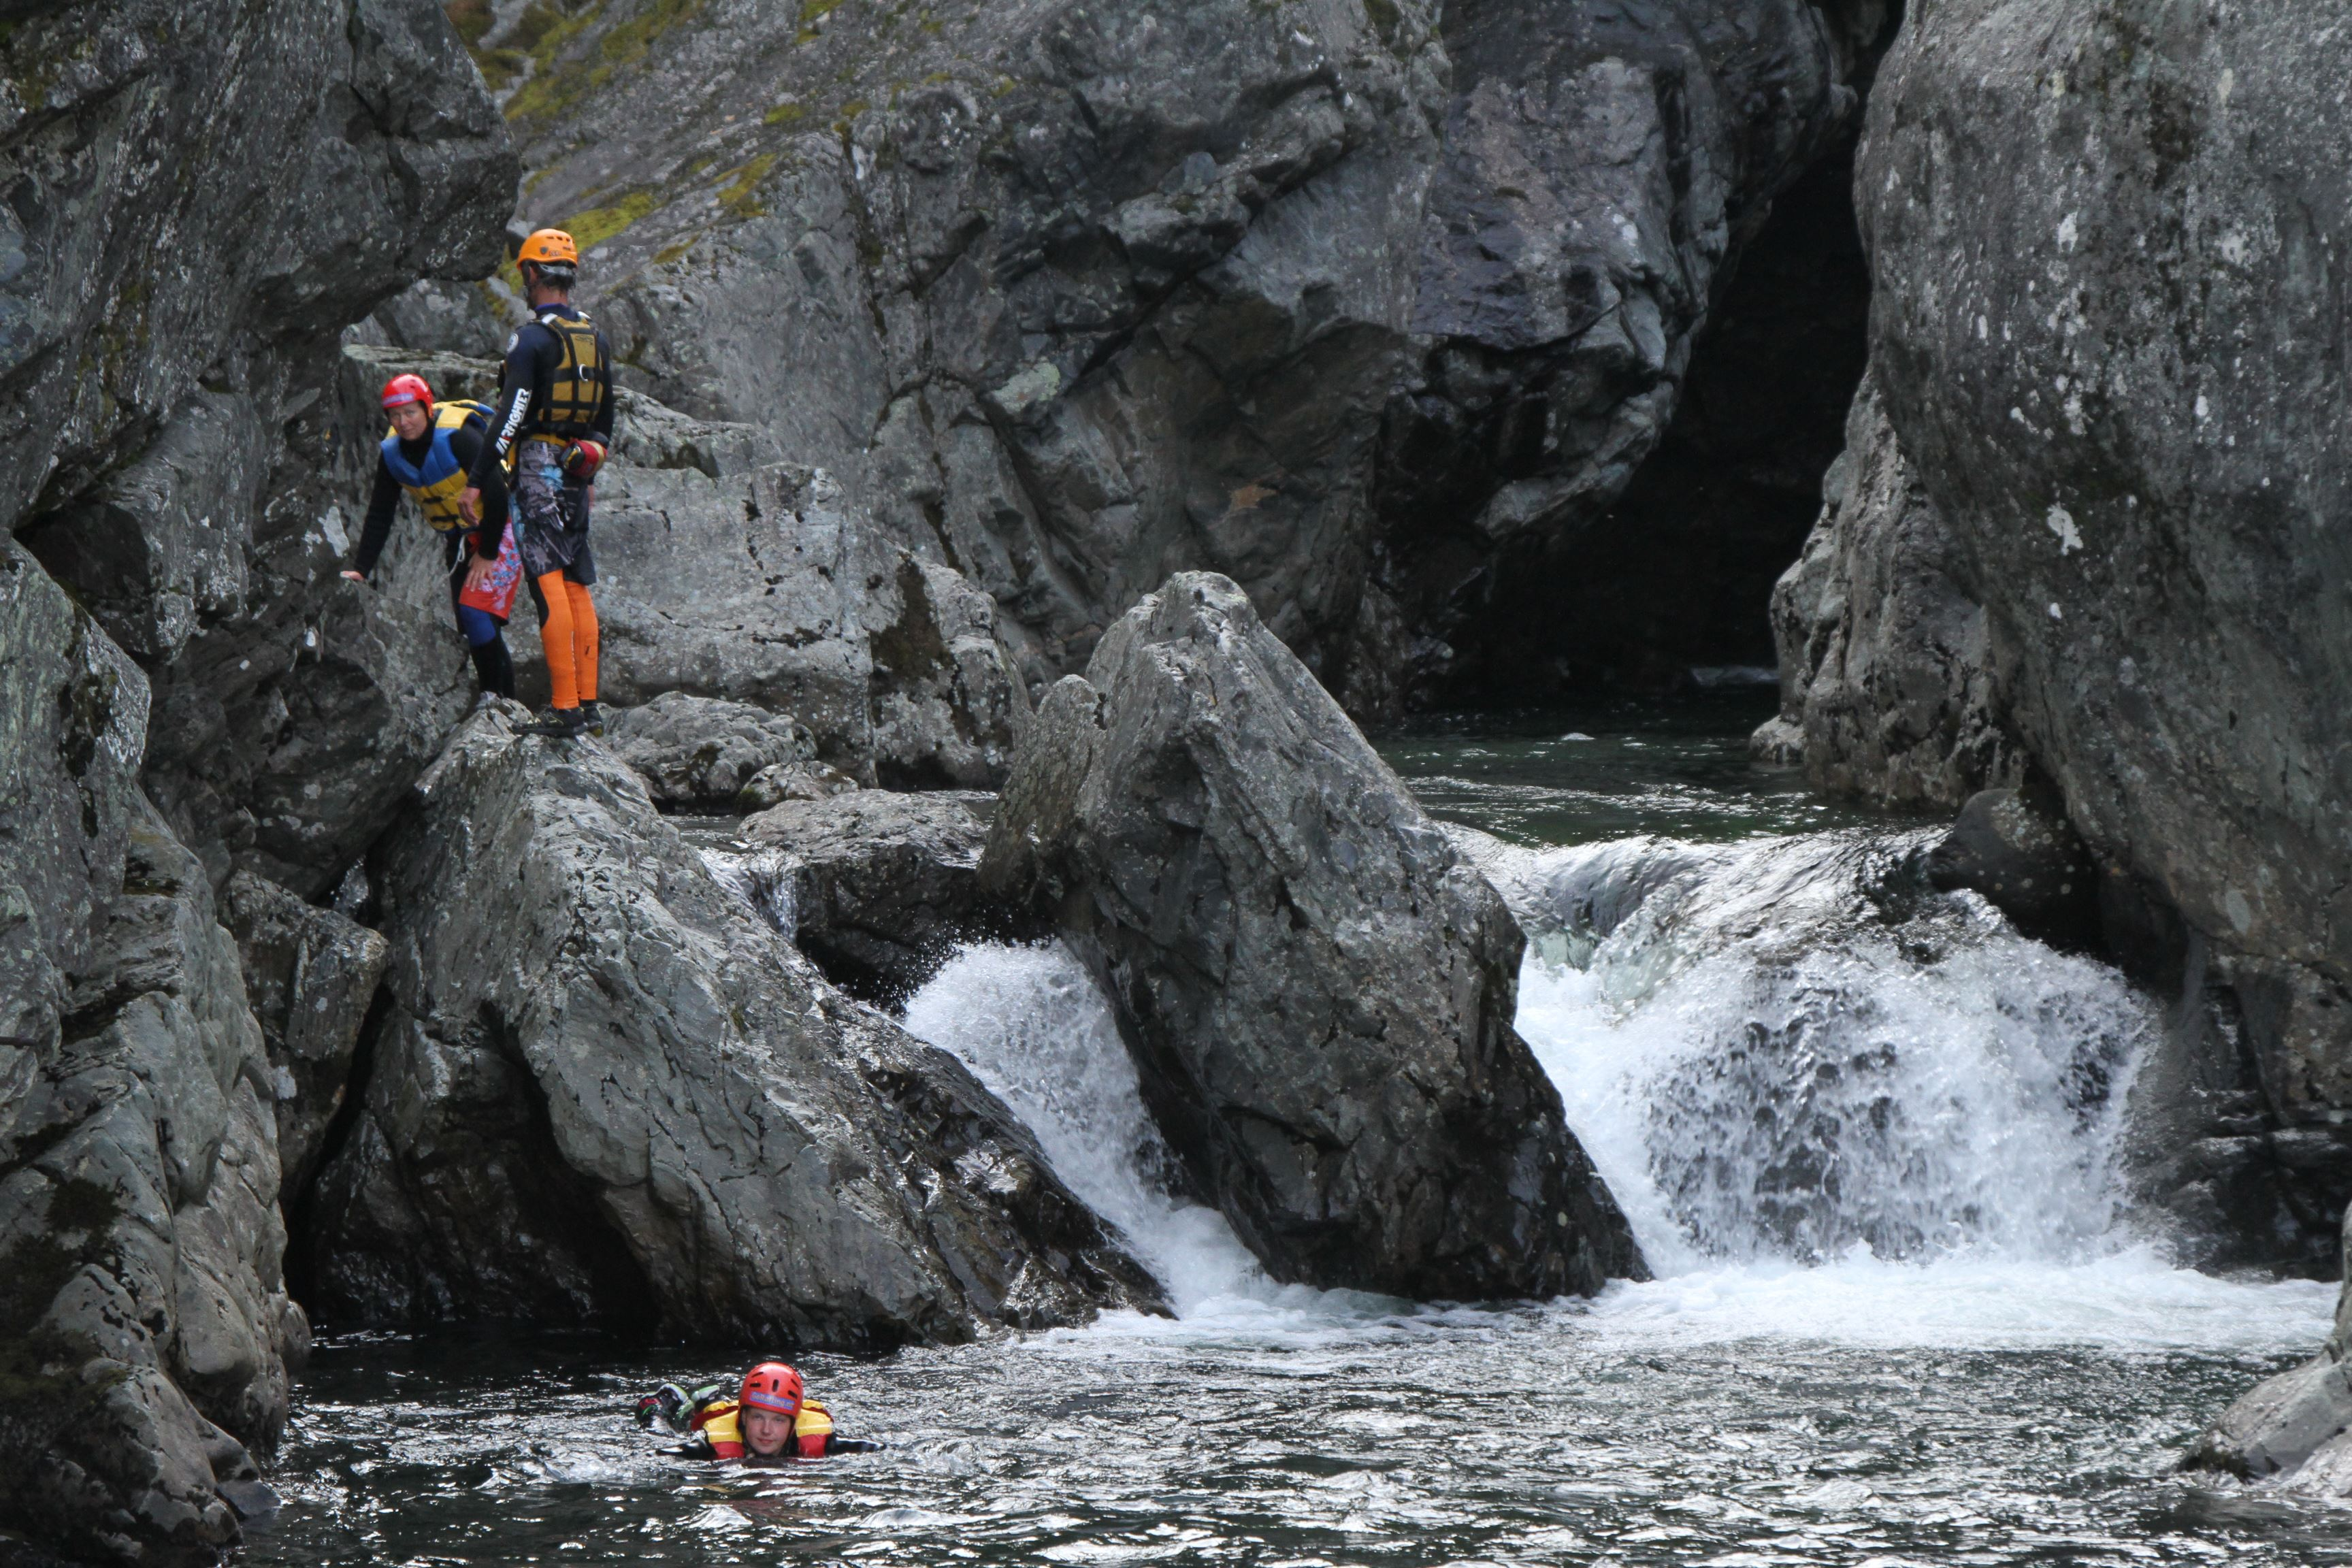 Juving (Canyoning)